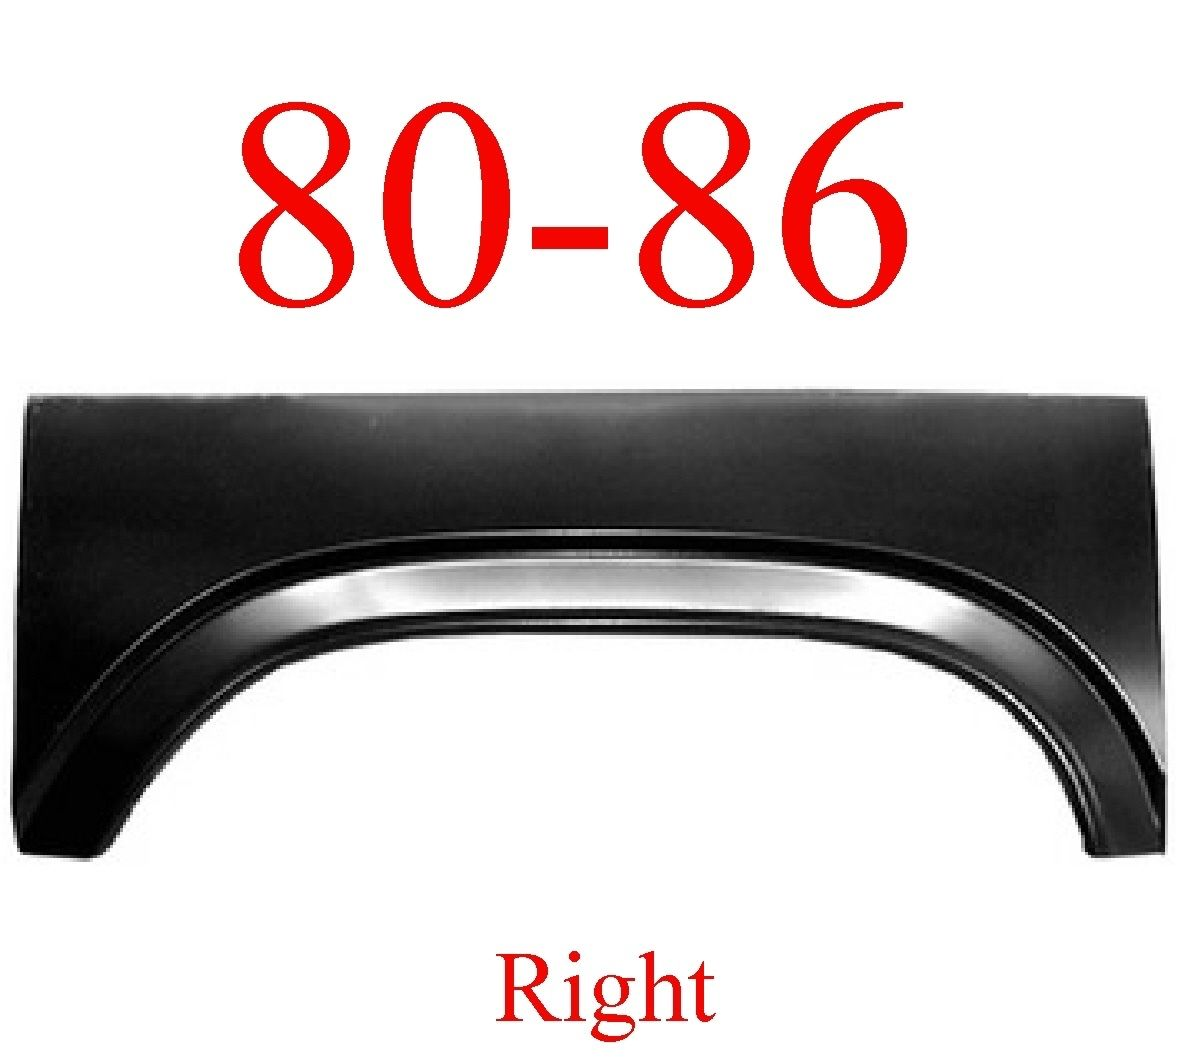 80-86 Ford Right Truck & Bronco Upper Wheel Arch